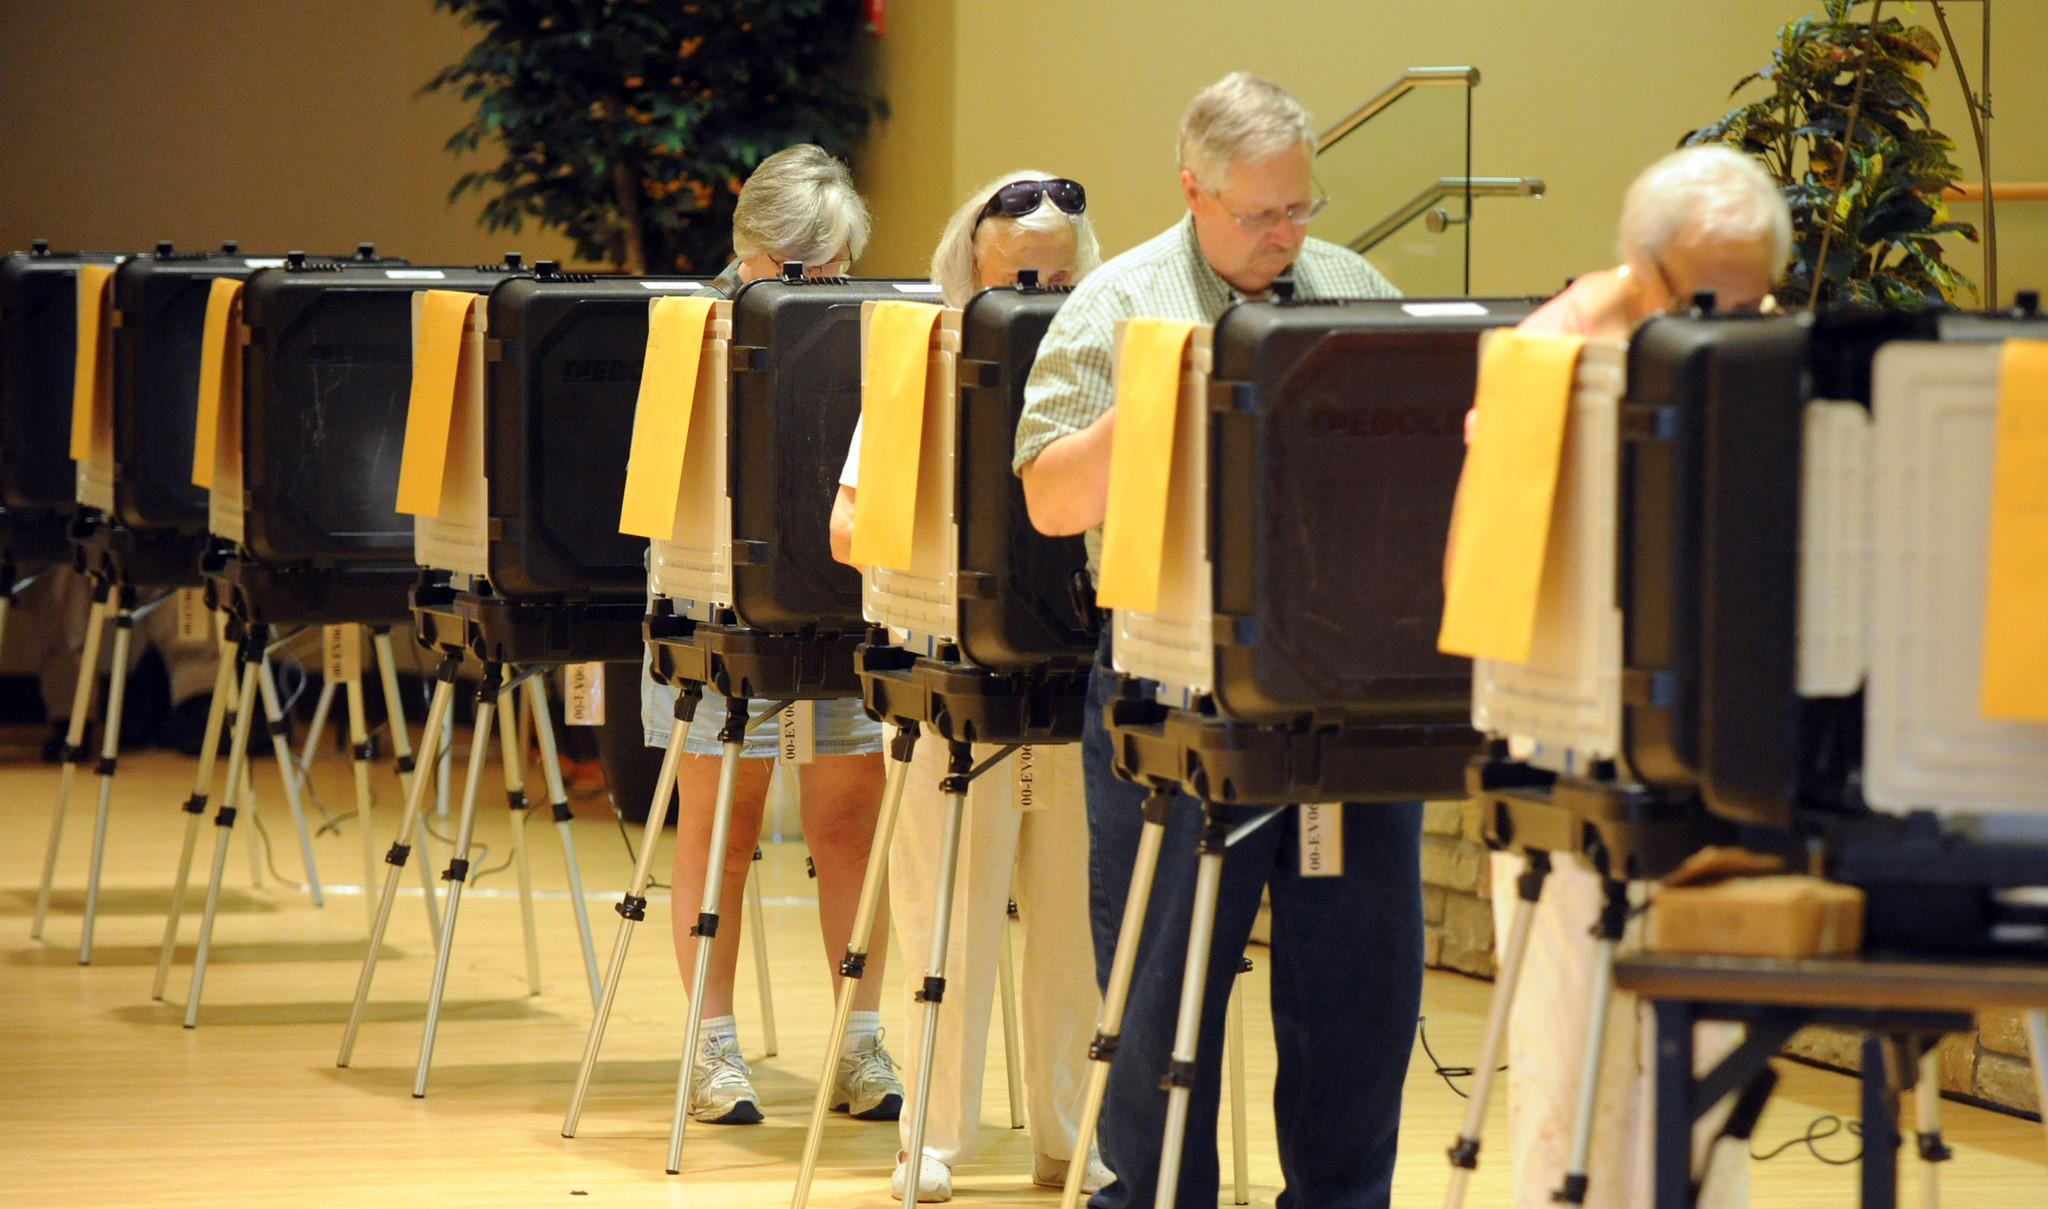 Voters cast their ballots during early voting at the Laurel-Beltsville Senior Activity Center on Friday, June 13.